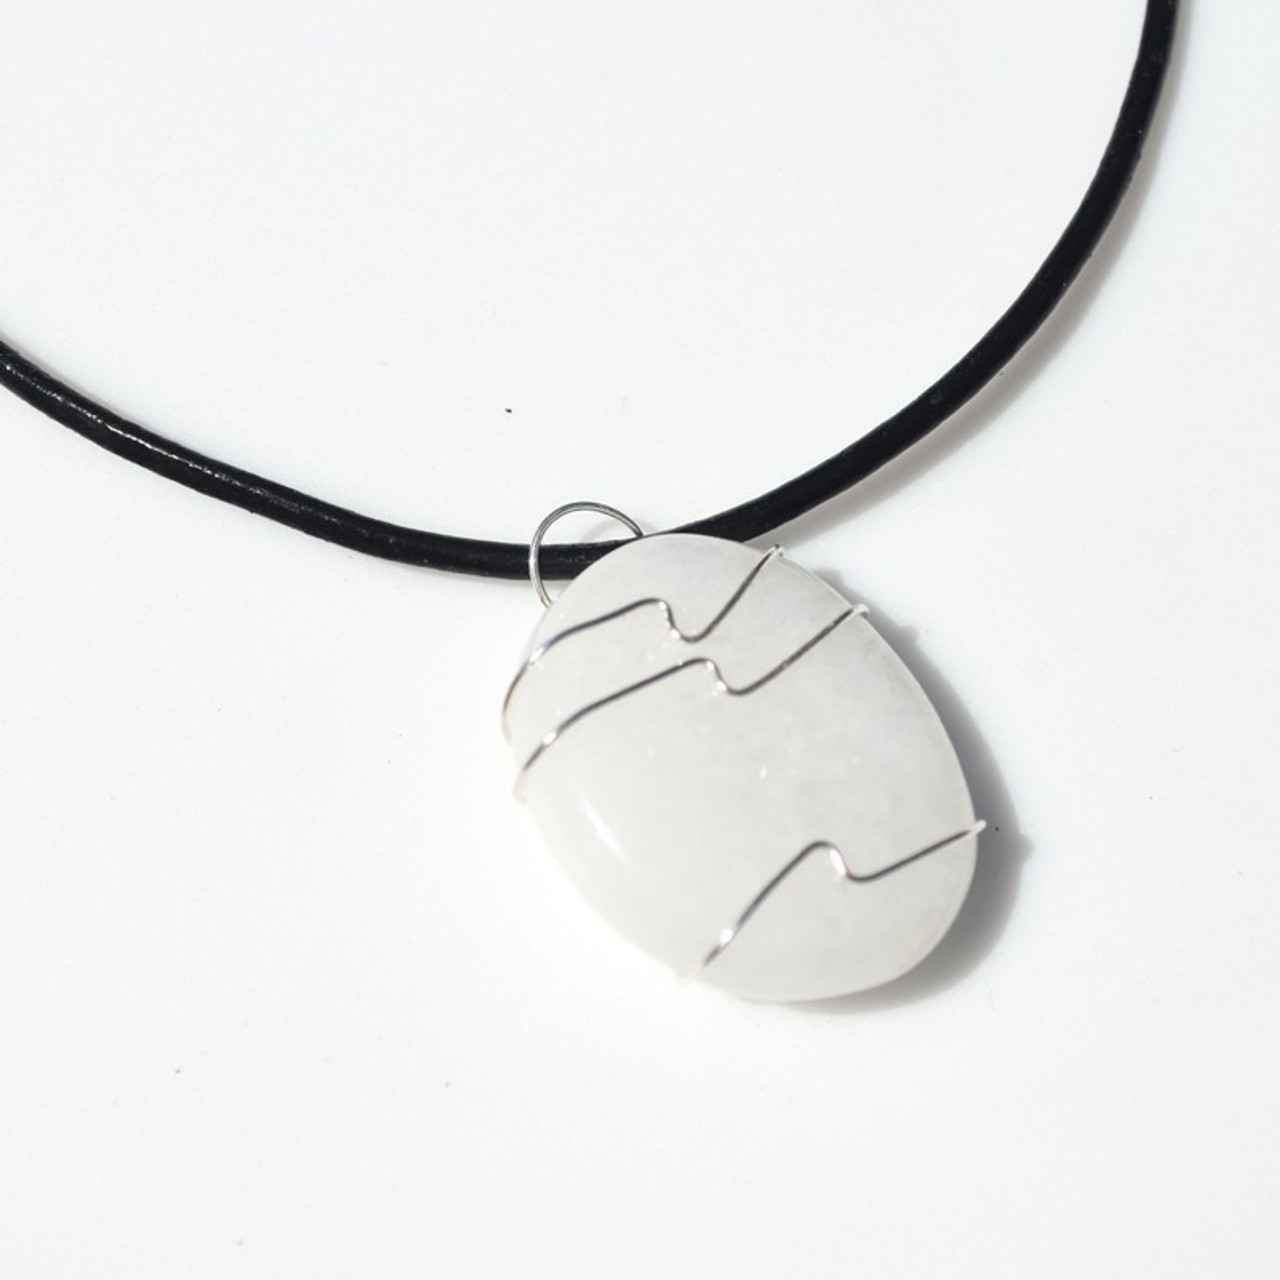 White Jade Palm Stone Hand Wire Wrapped on a Leather Thong Necklace - Made to Order